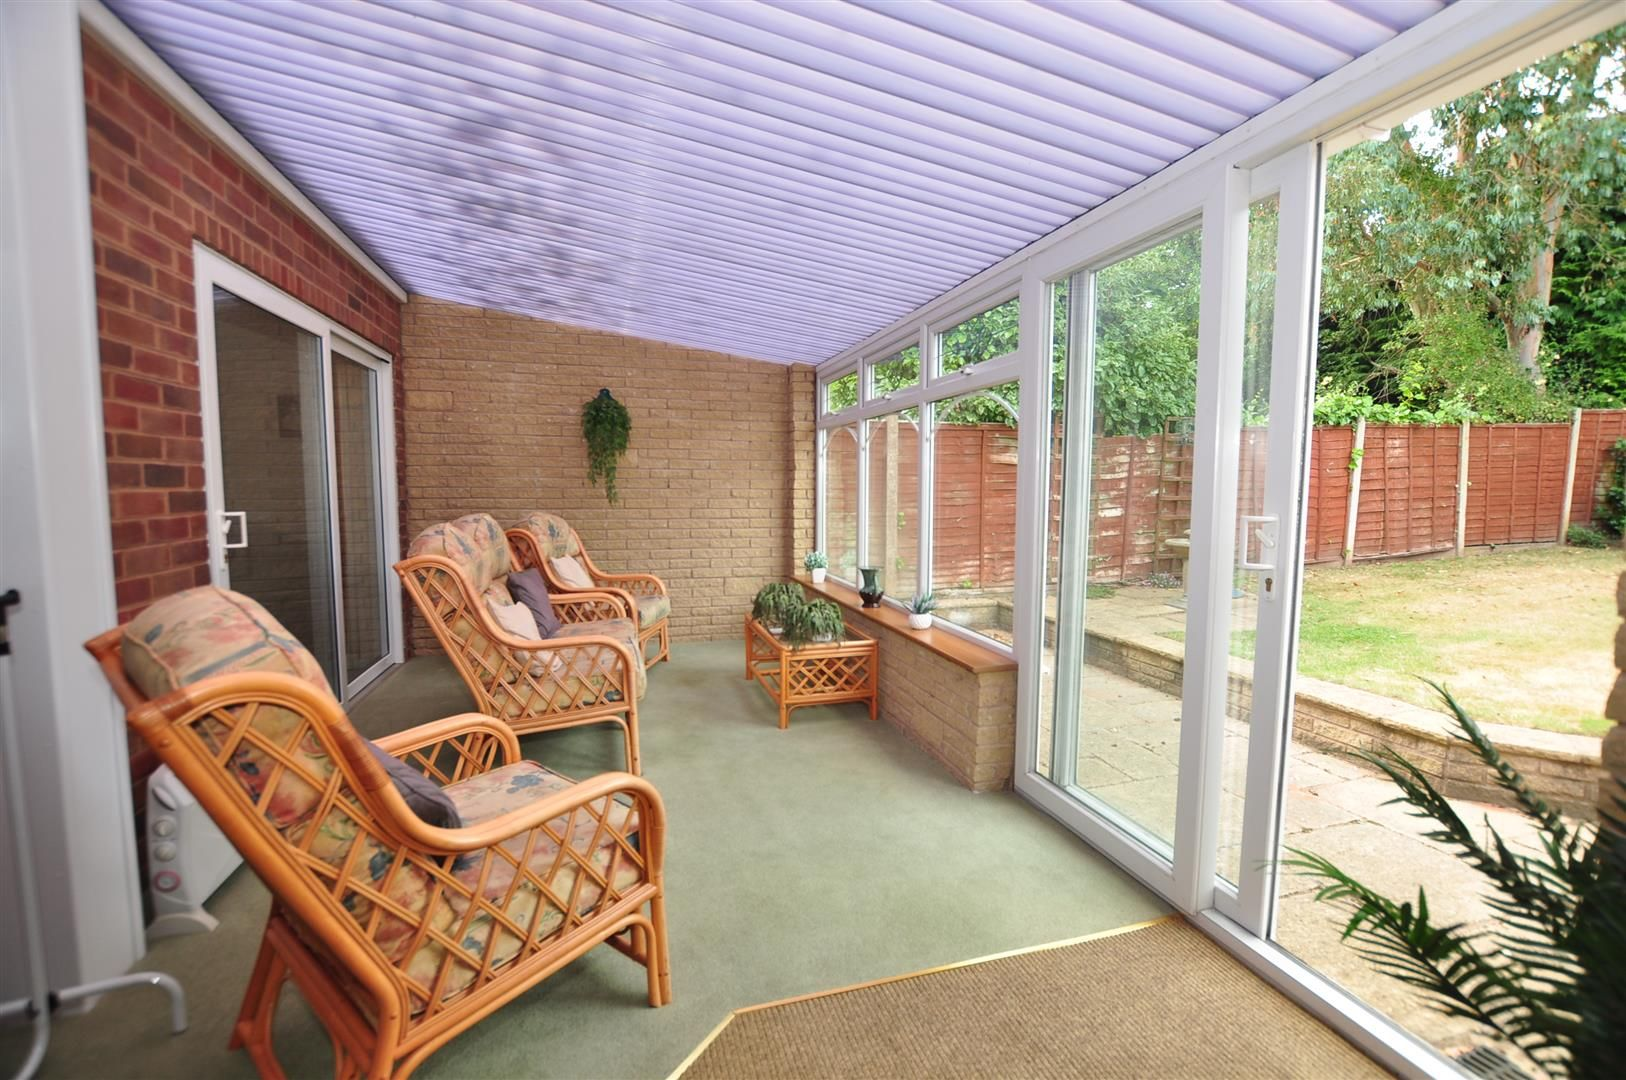 3 bed semi-detached for sale in Hagley 5